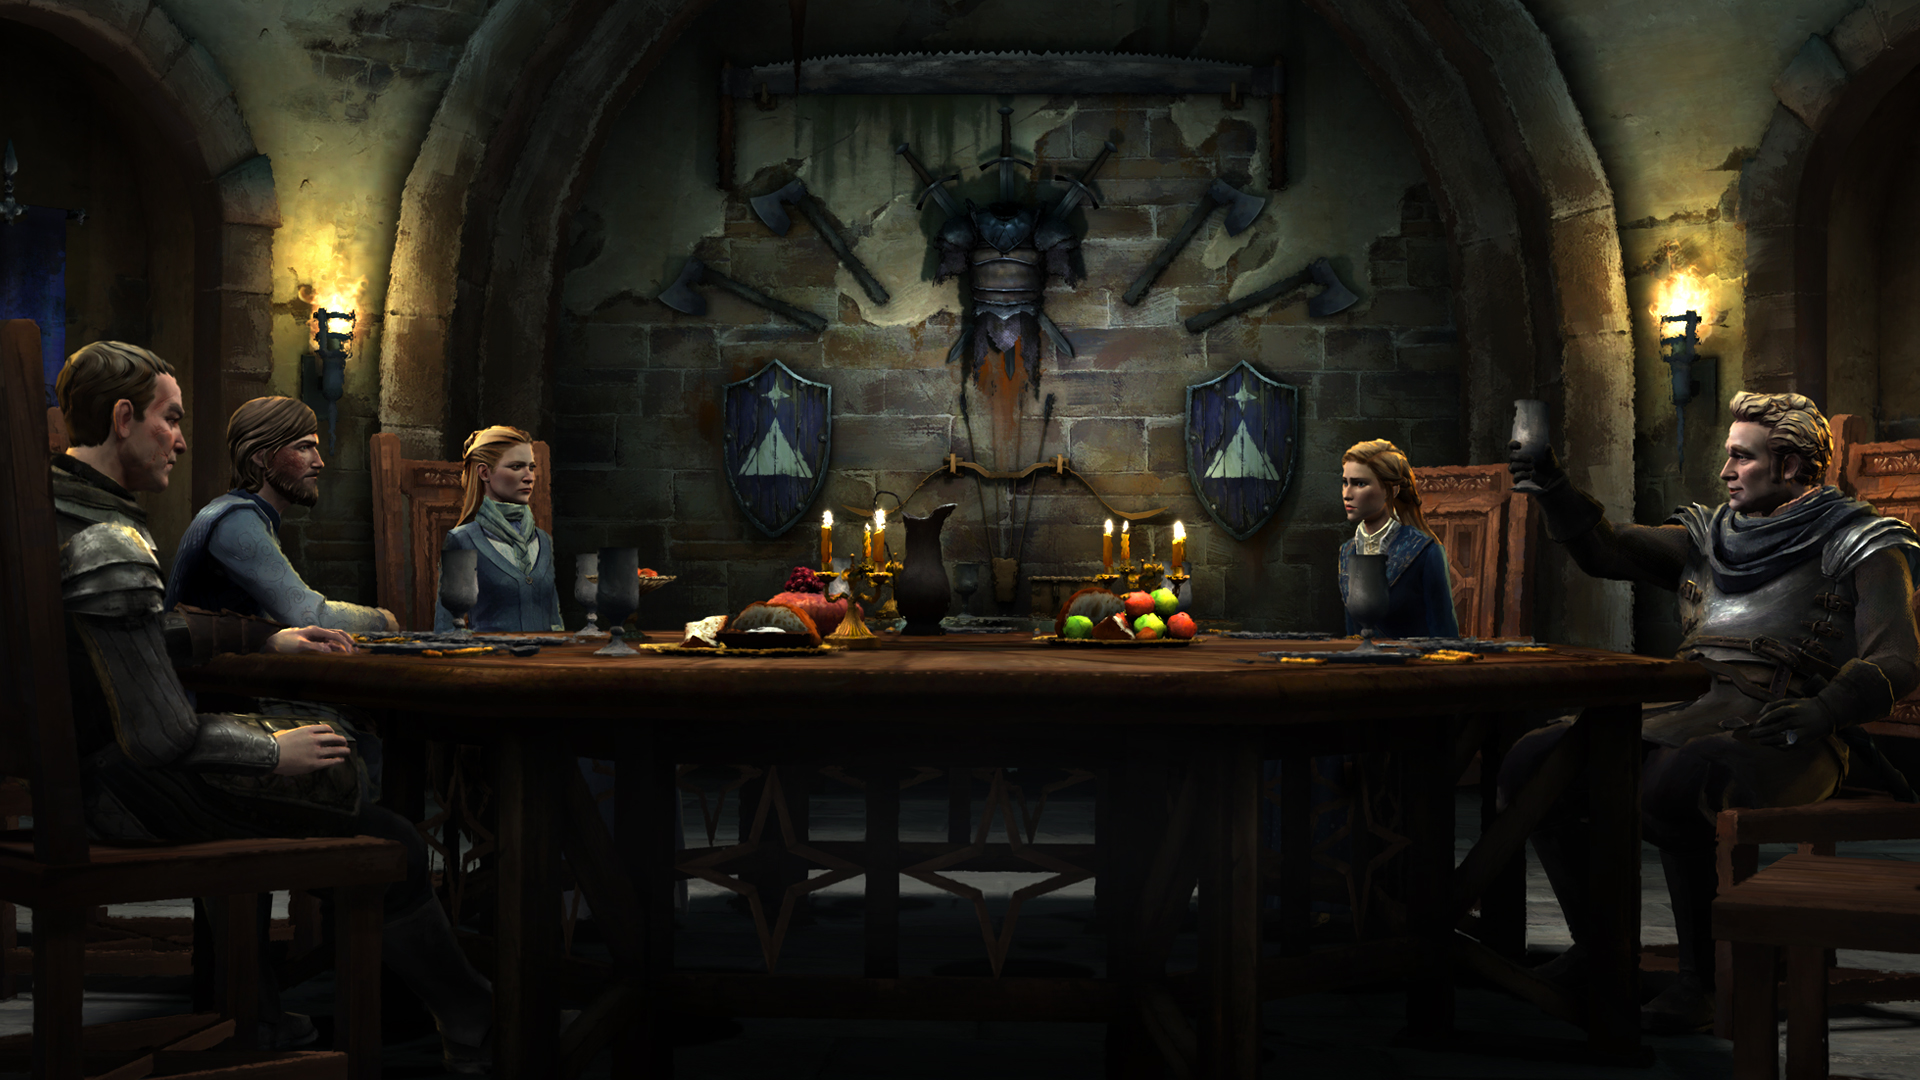 game-of-thrones-game-episode-4-whitehill-dinner-table